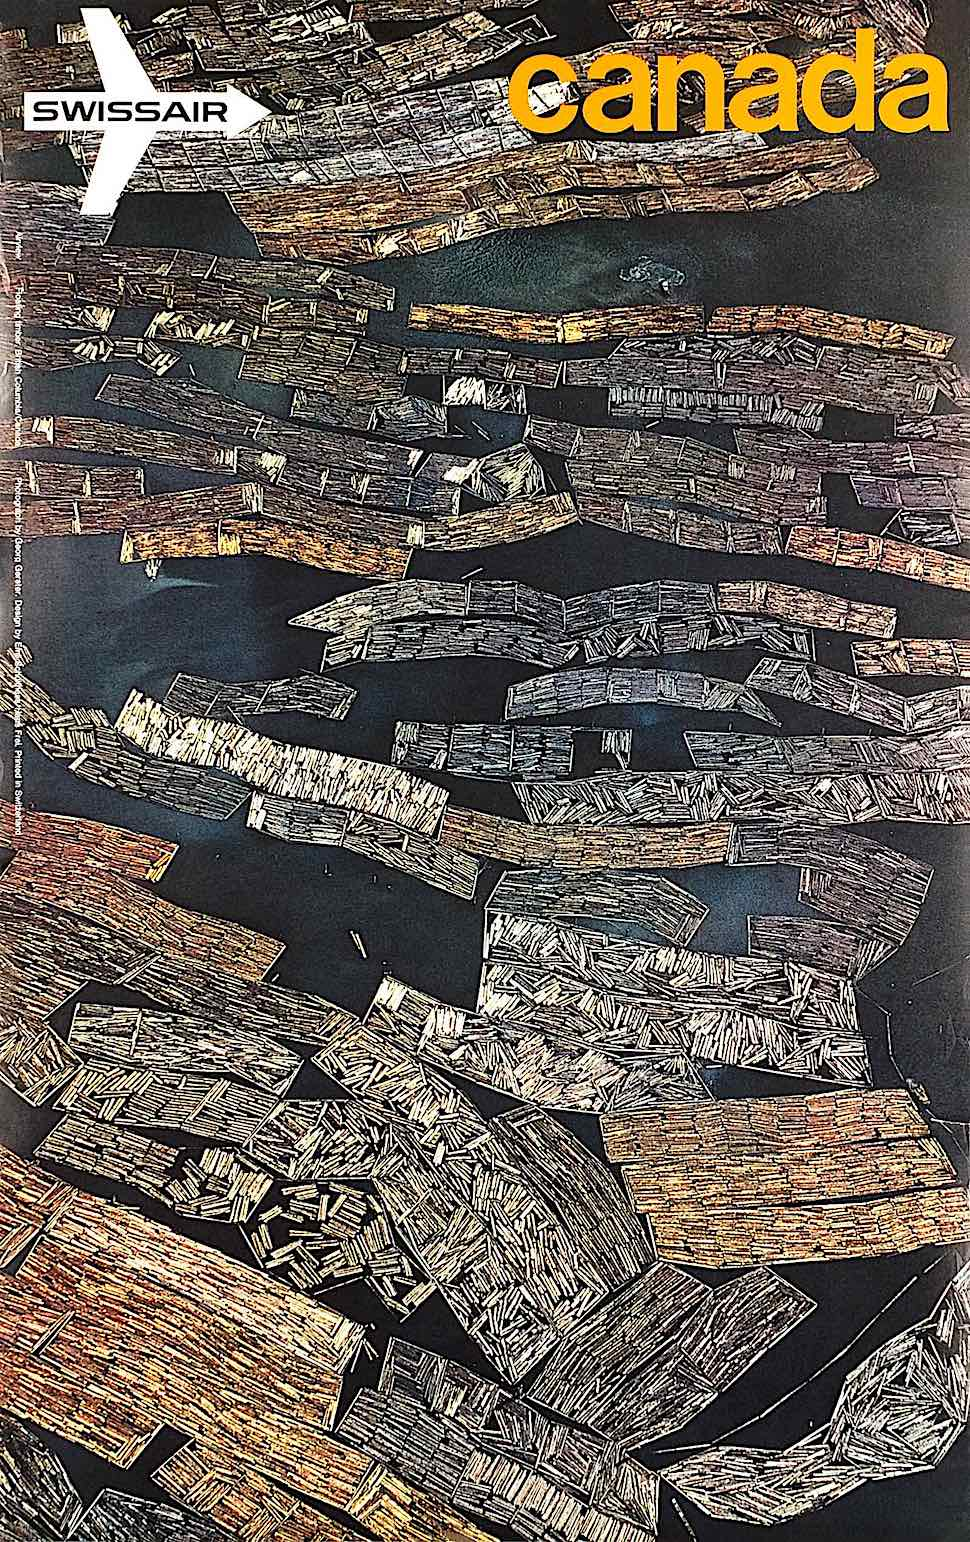 a Georg Gerster photograph, a birds eye view of Canadian logging rafts on a river for Swissair airline